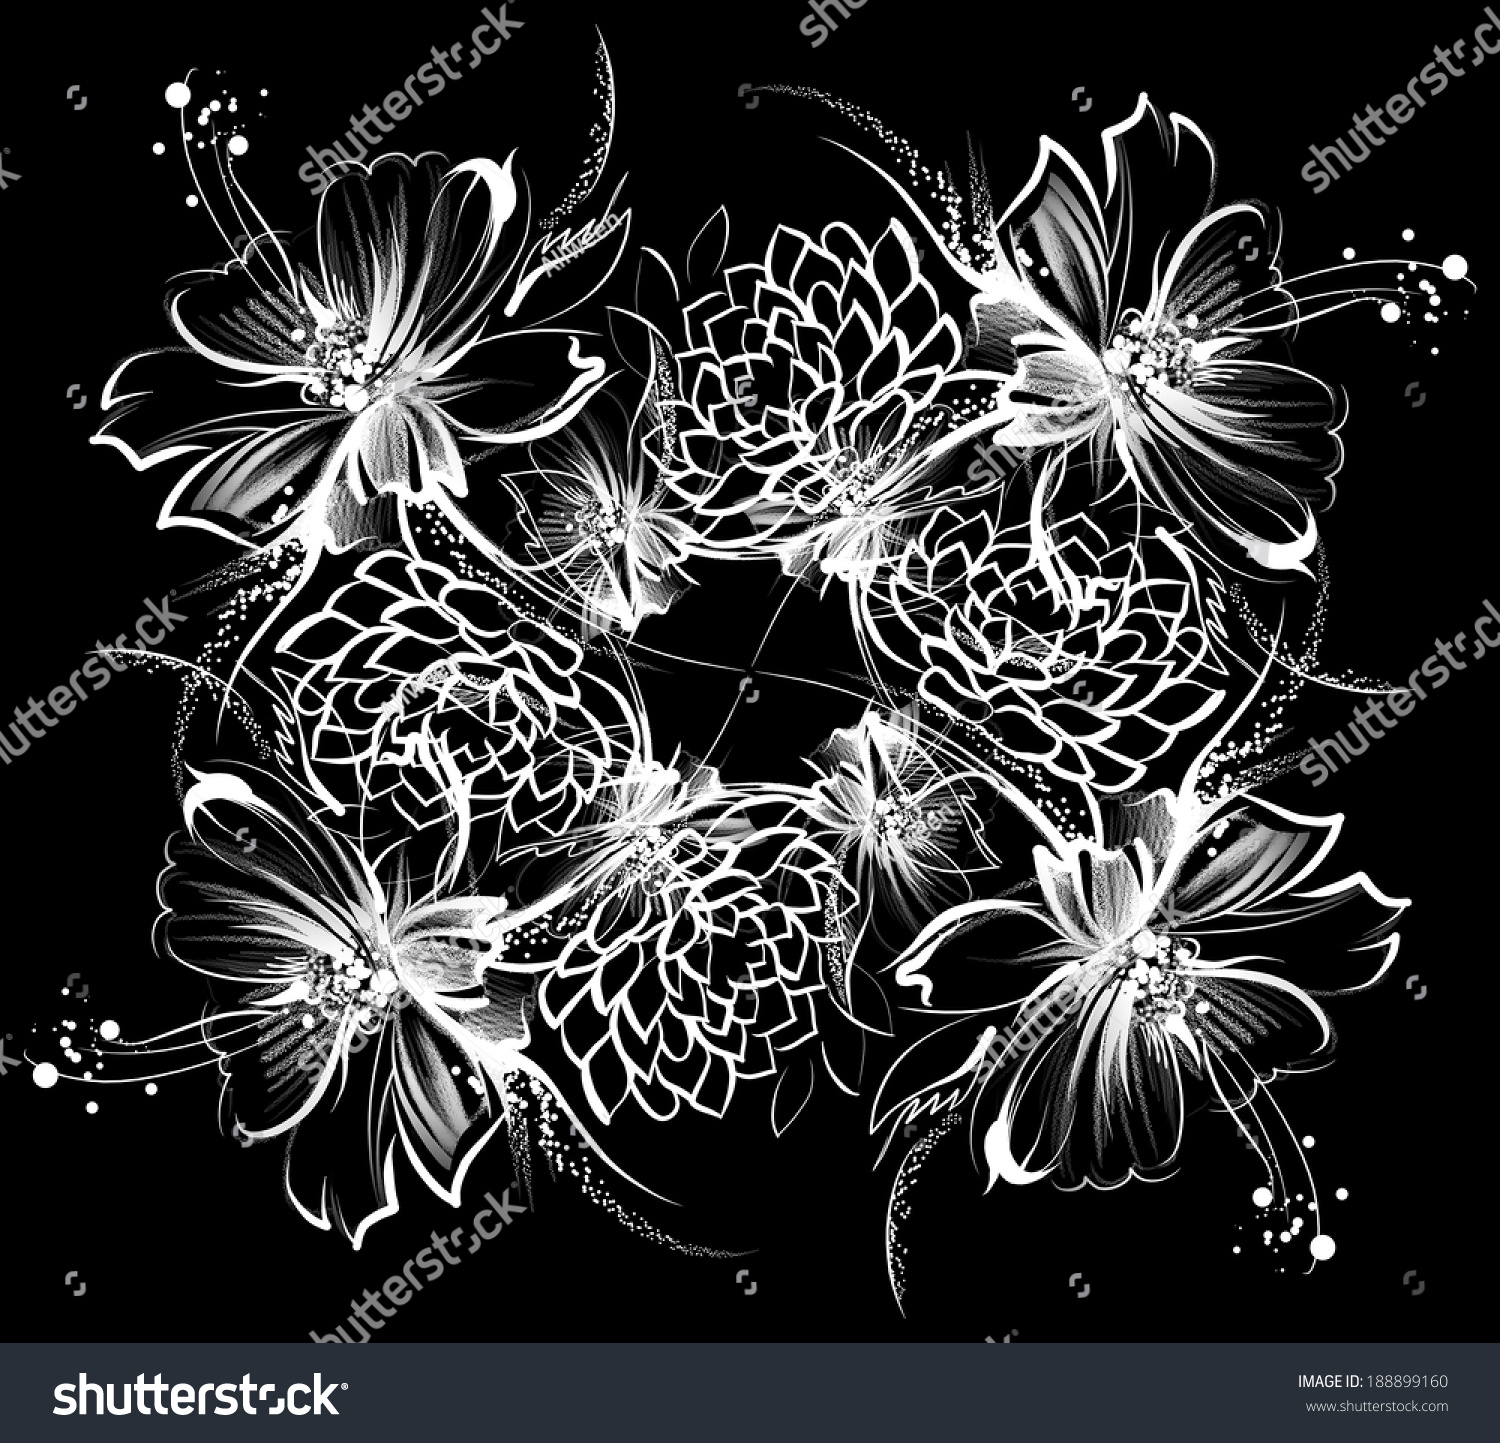 Flowers Drawing White Chalk On Black Stock Illustration 188899160